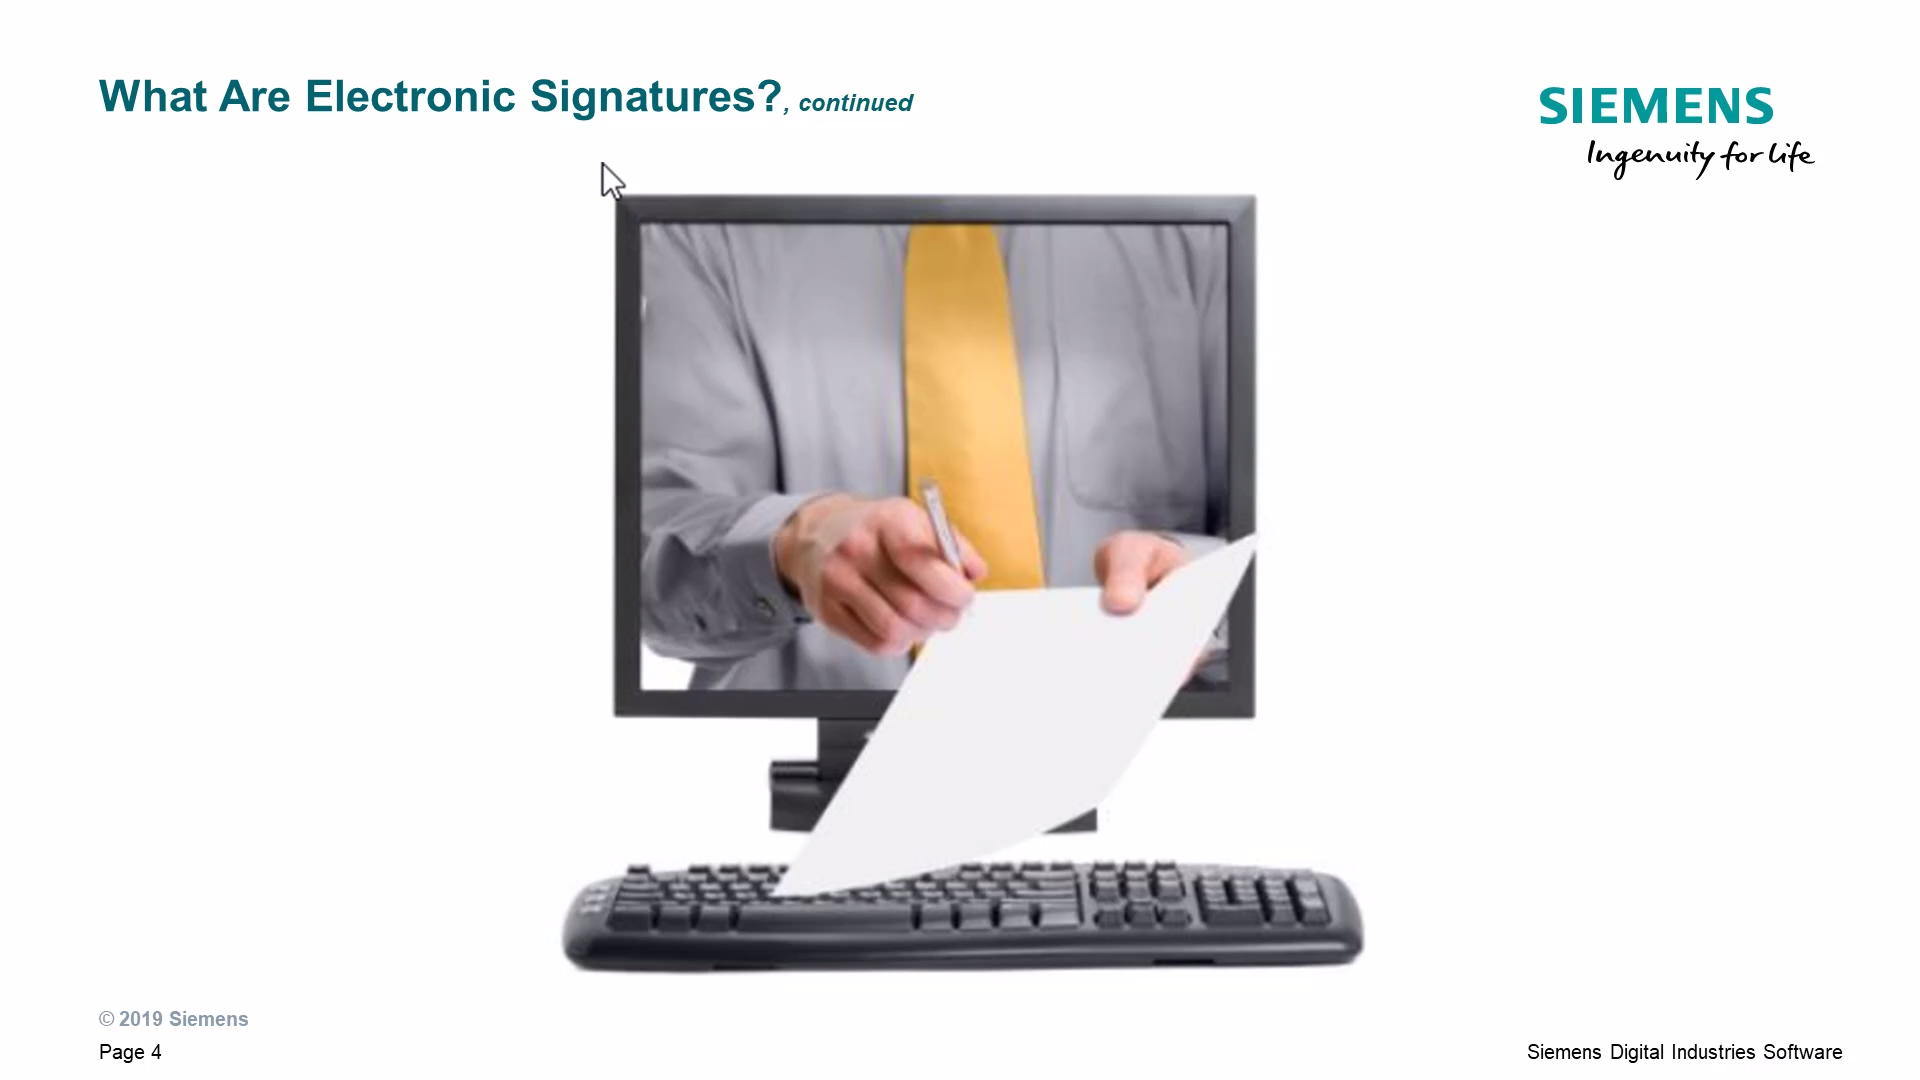 Electronic Signatures Overview cover image